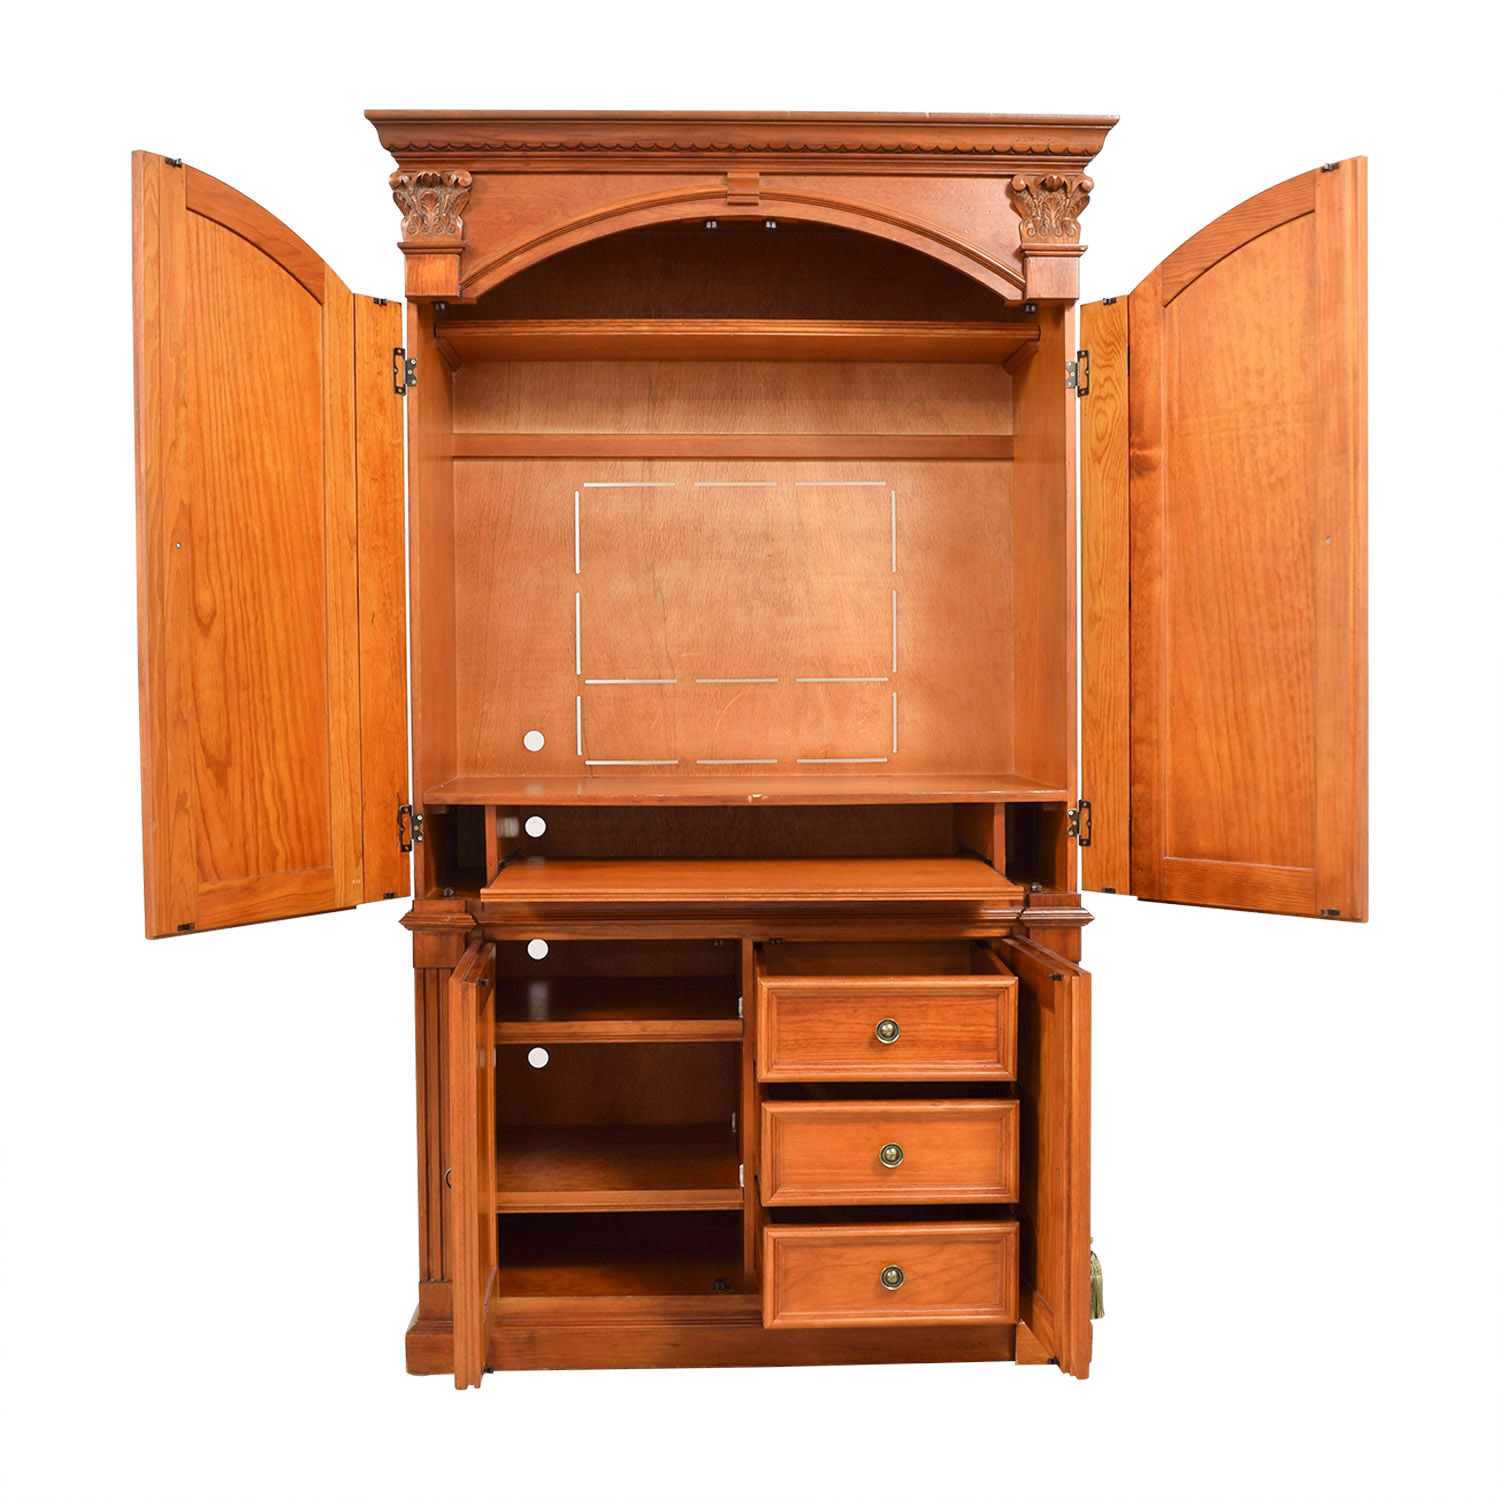 Hamilton Heritage Hamilton Heritage Entertainment Armoire on sale